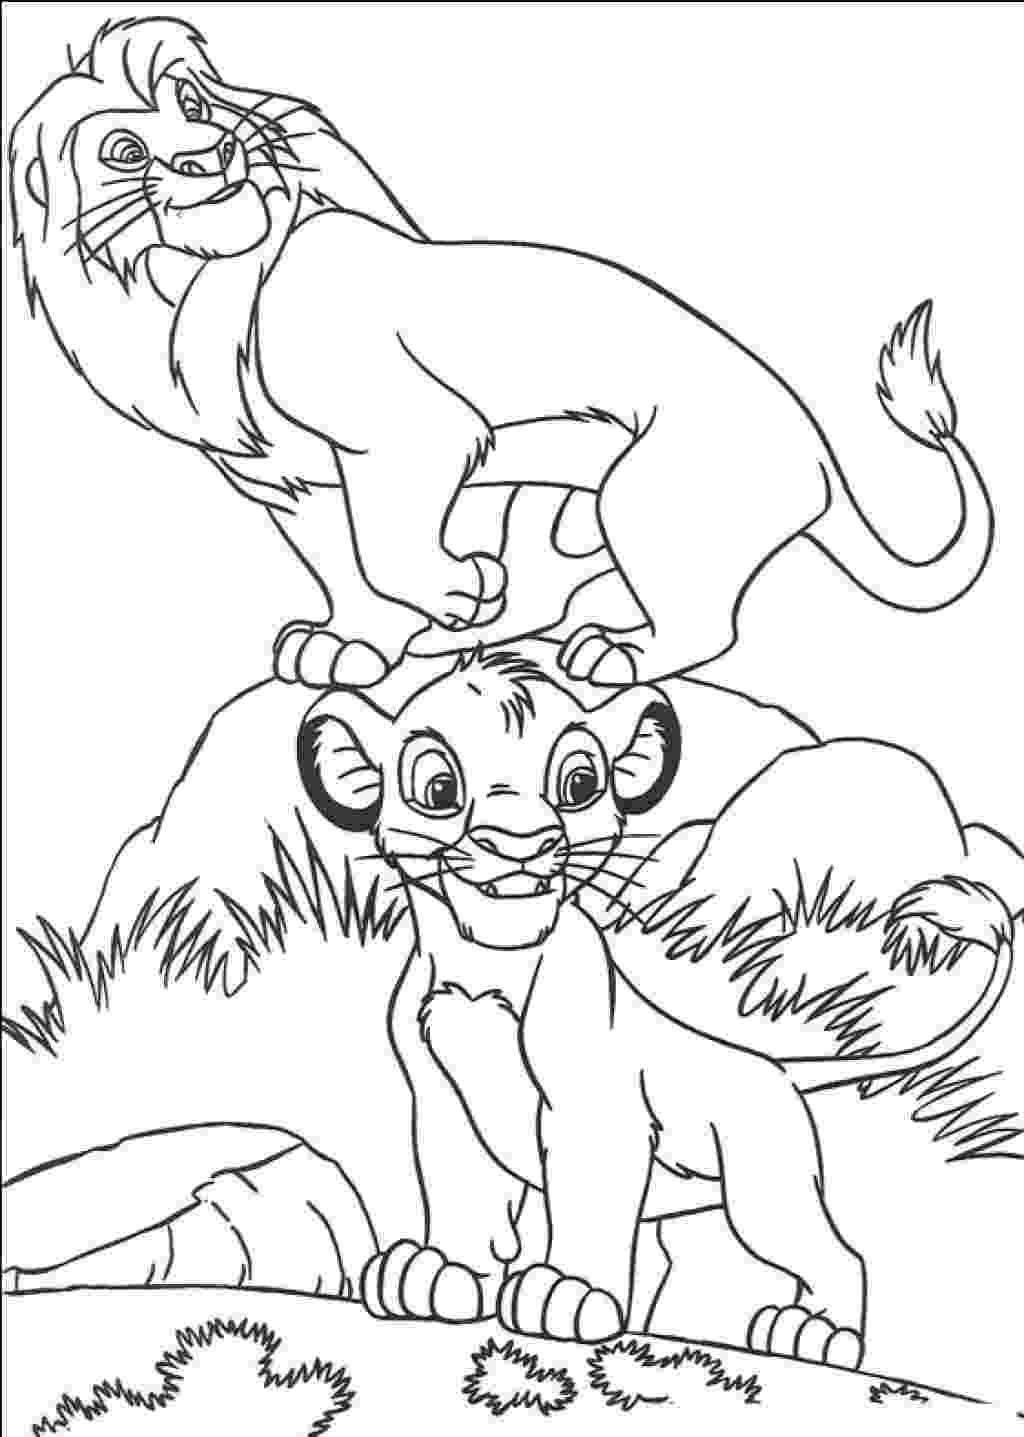 colouring pages for toddlers printable zebra coloring pages free printable kids coloring pages for colouring printable pages toddlers